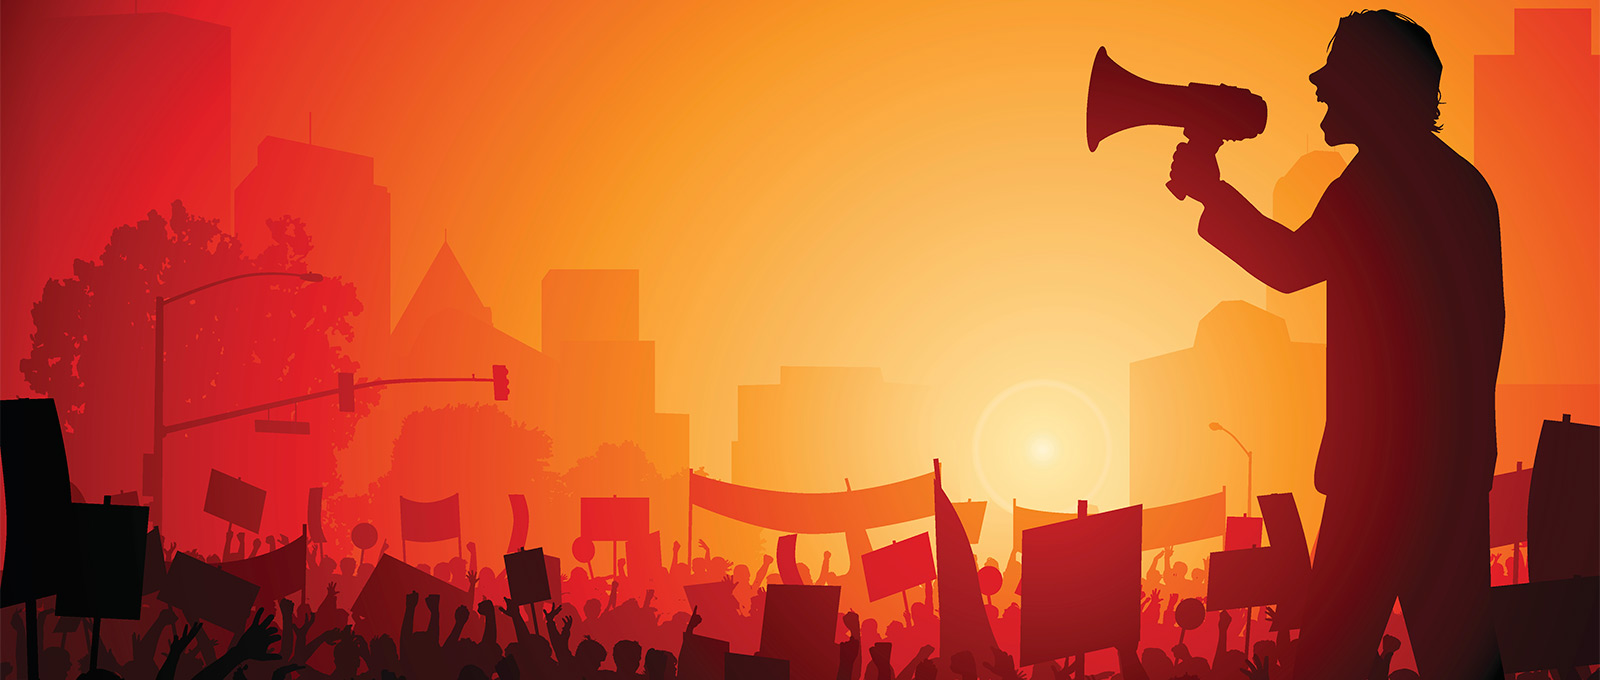 5 Insights On Corporate Activism From Top PR Experts